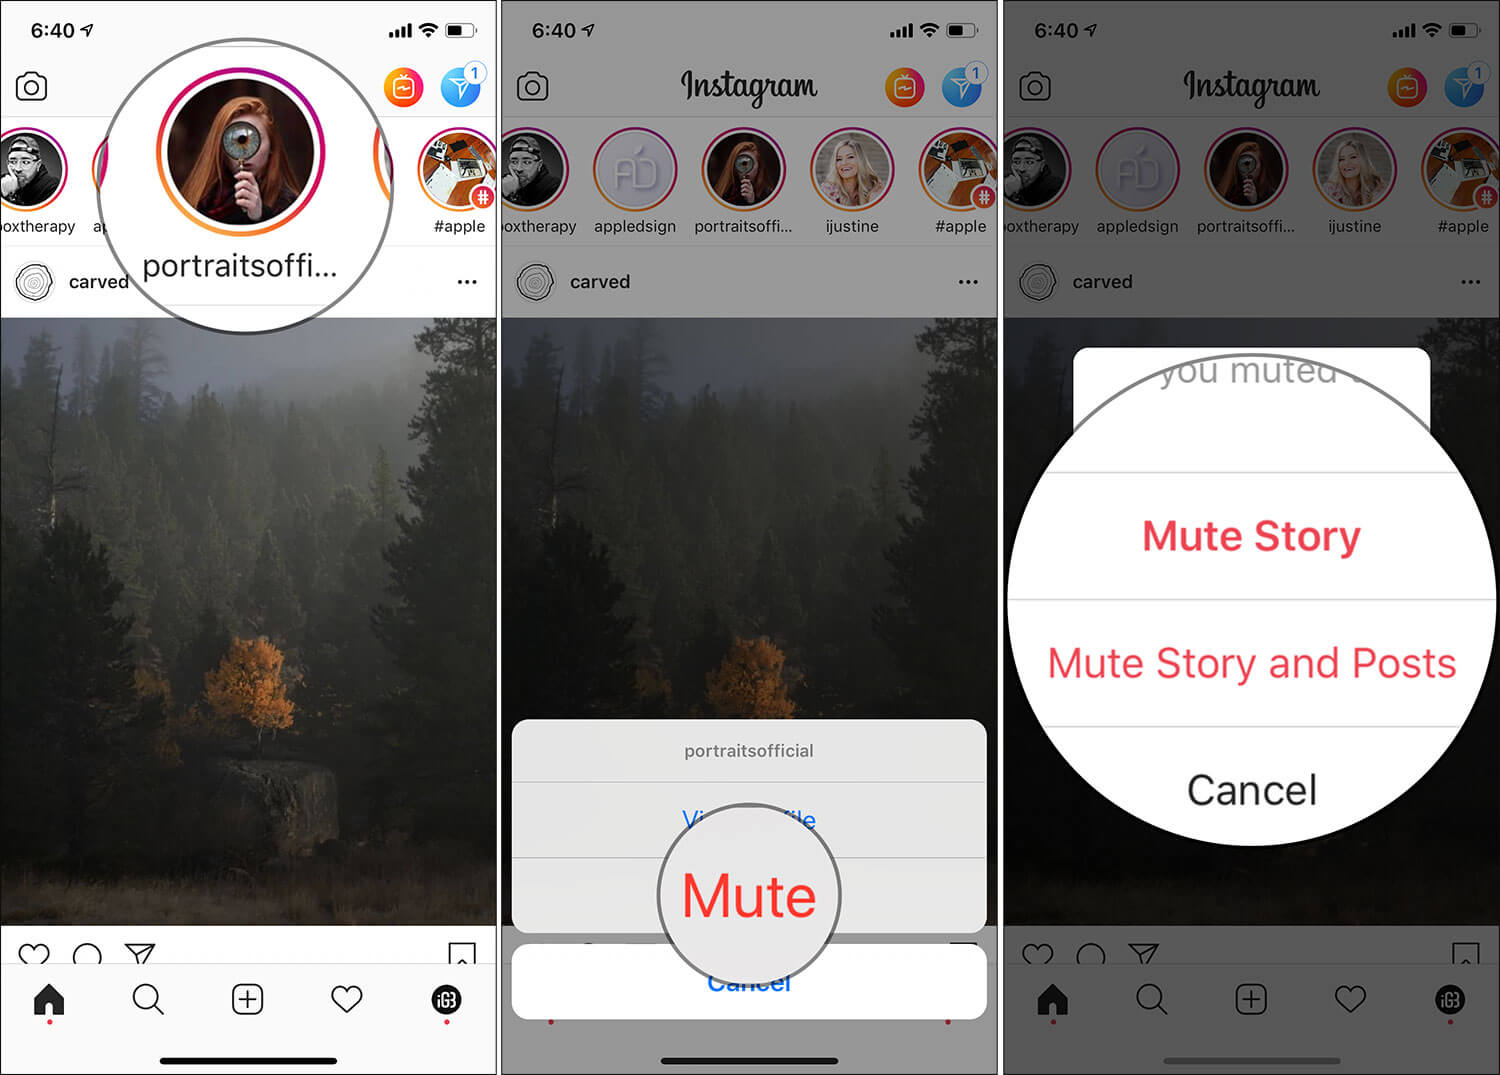 Mute Instagram Story on iPhone Without Unfollowing Account